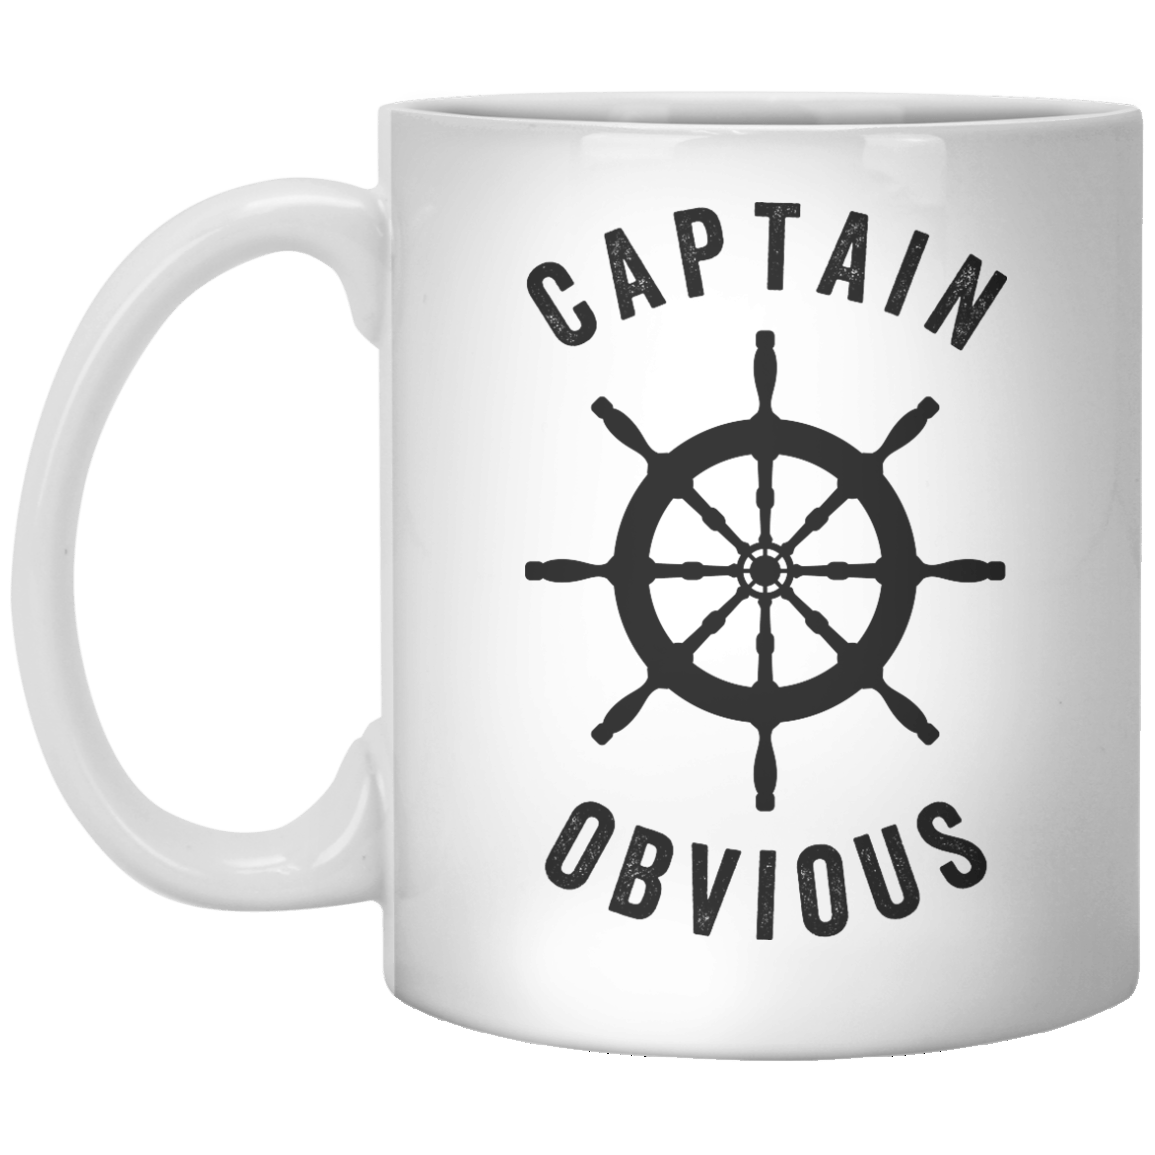 Captain Obsious - Shirtoopia